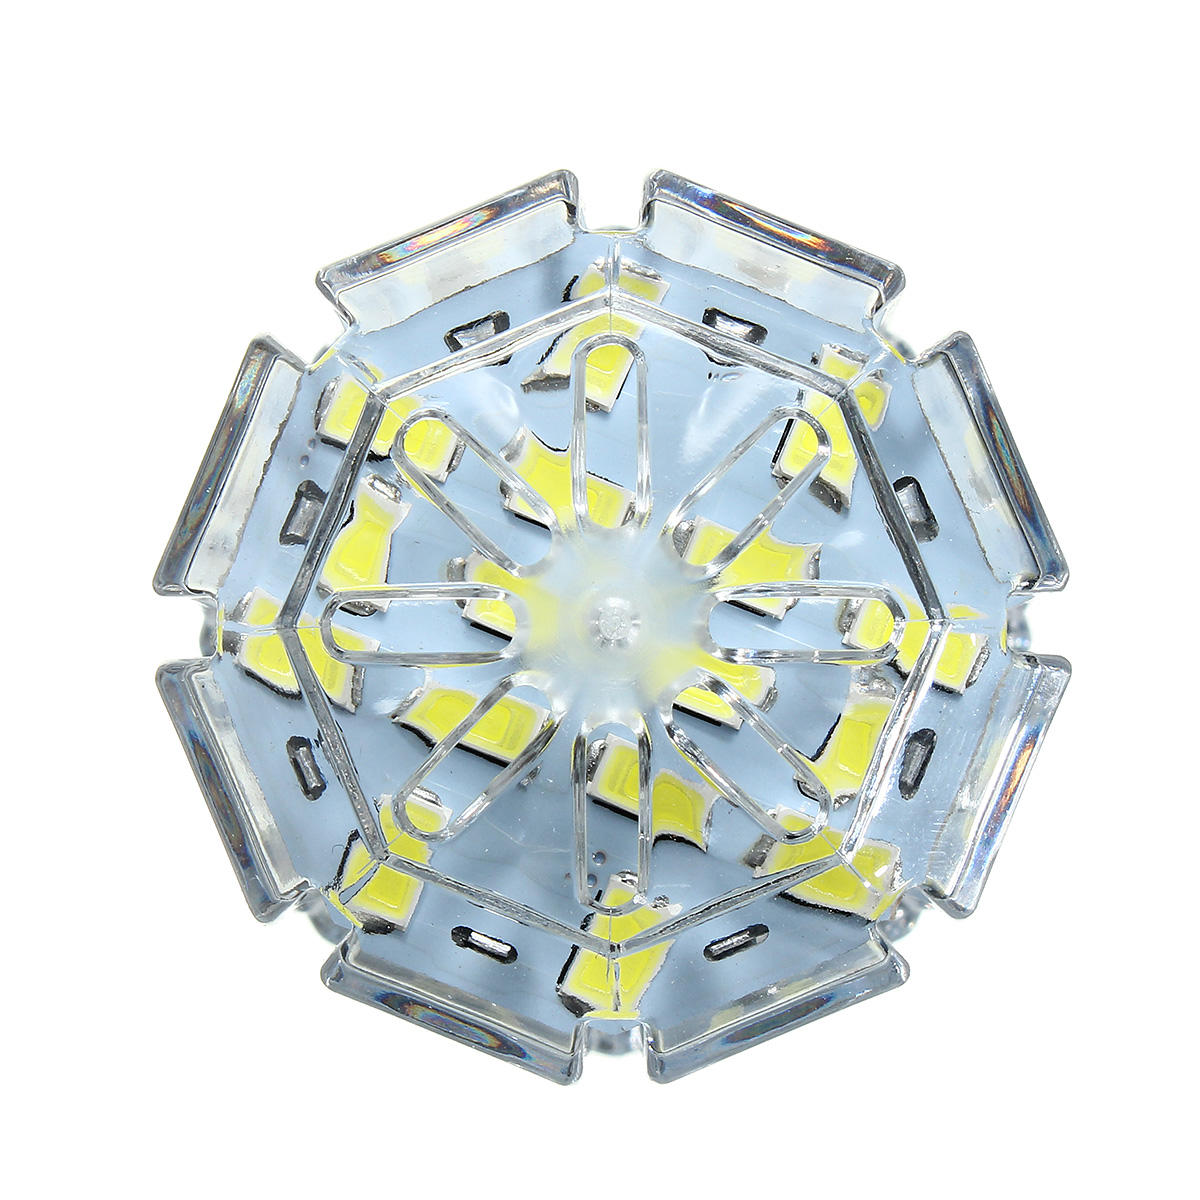 E27/E14/E12/B22/G9/GU10 LED Bulb 4W SMD 4014 56 400LM Pure White/Warm White Corn Light Lamp AC 220V - 8